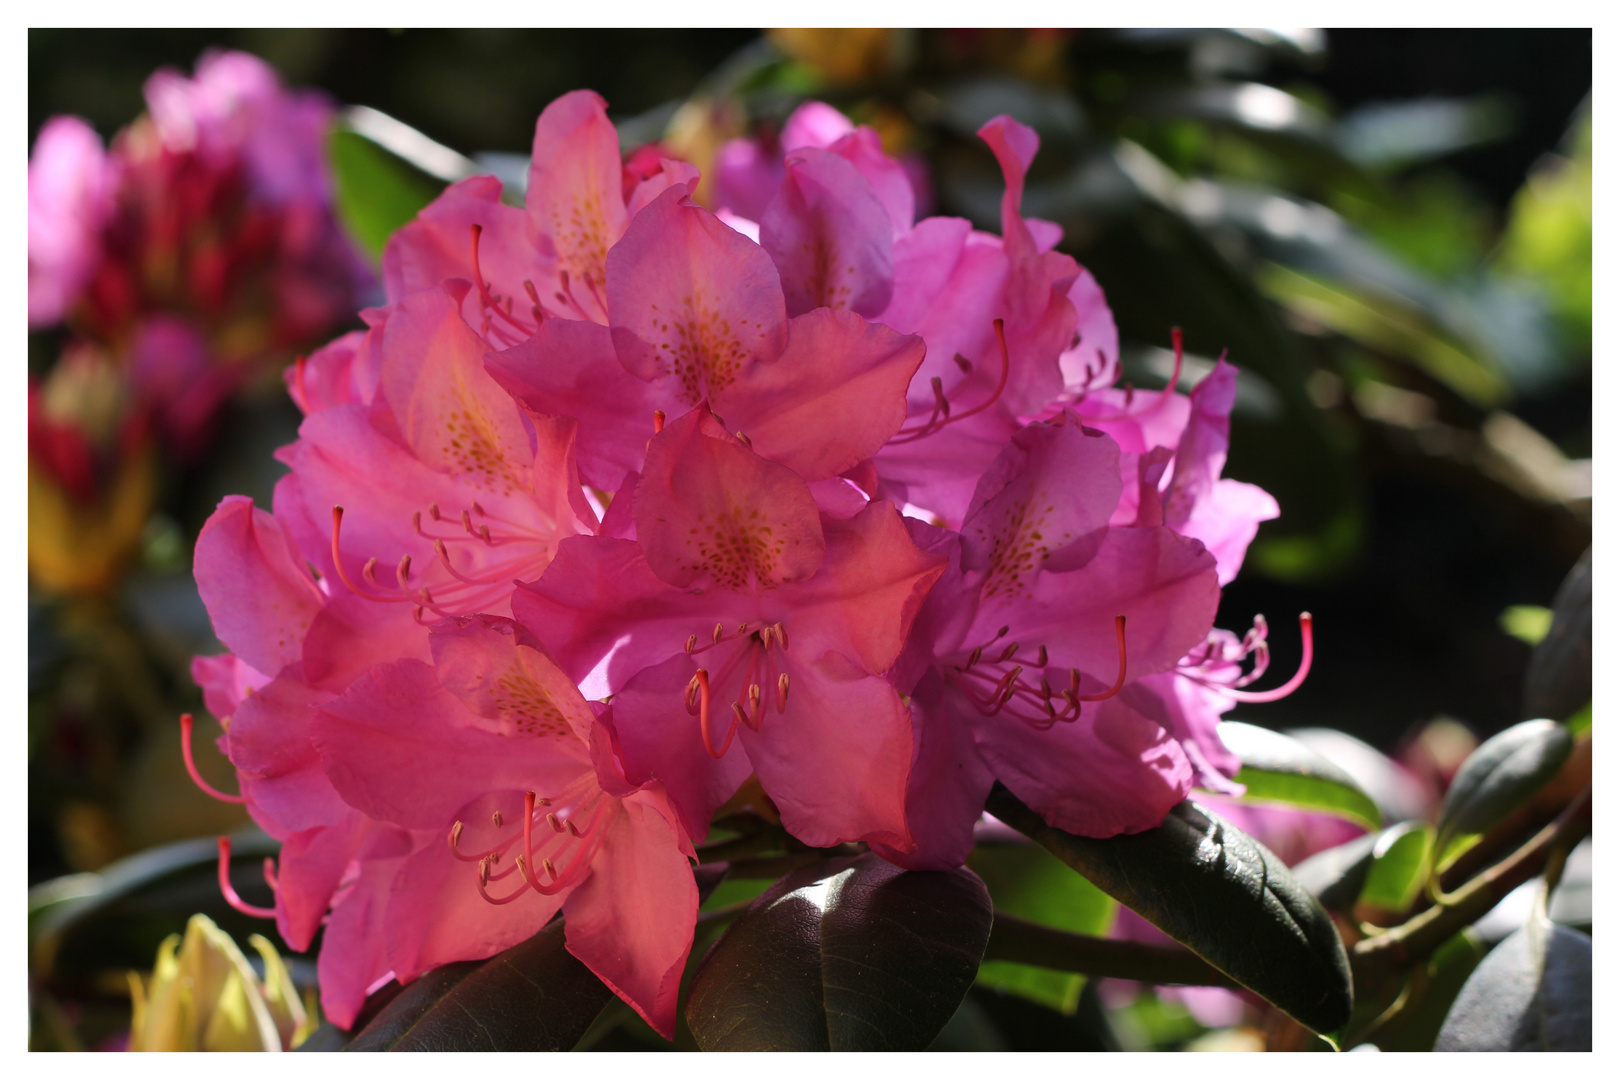 ++ Rhododendron ++